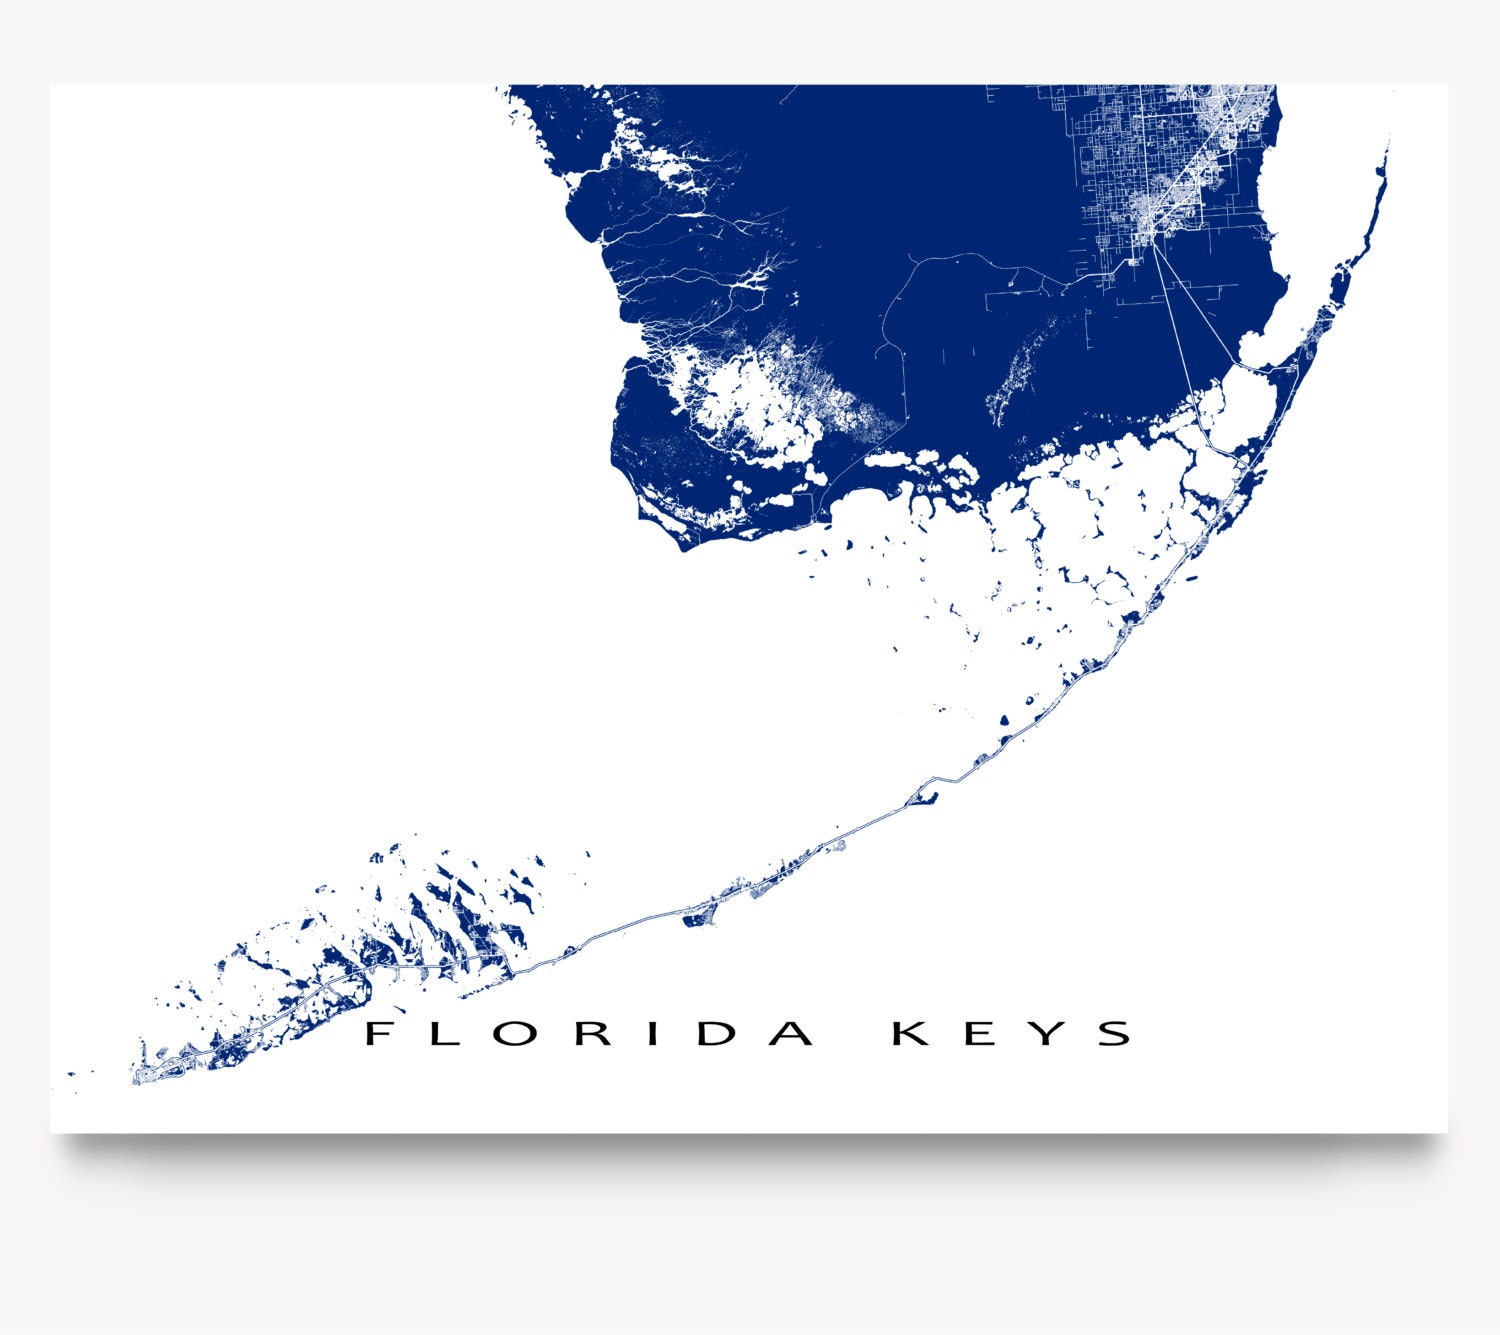 This is an image of Wild Printable Map of Florida Keys